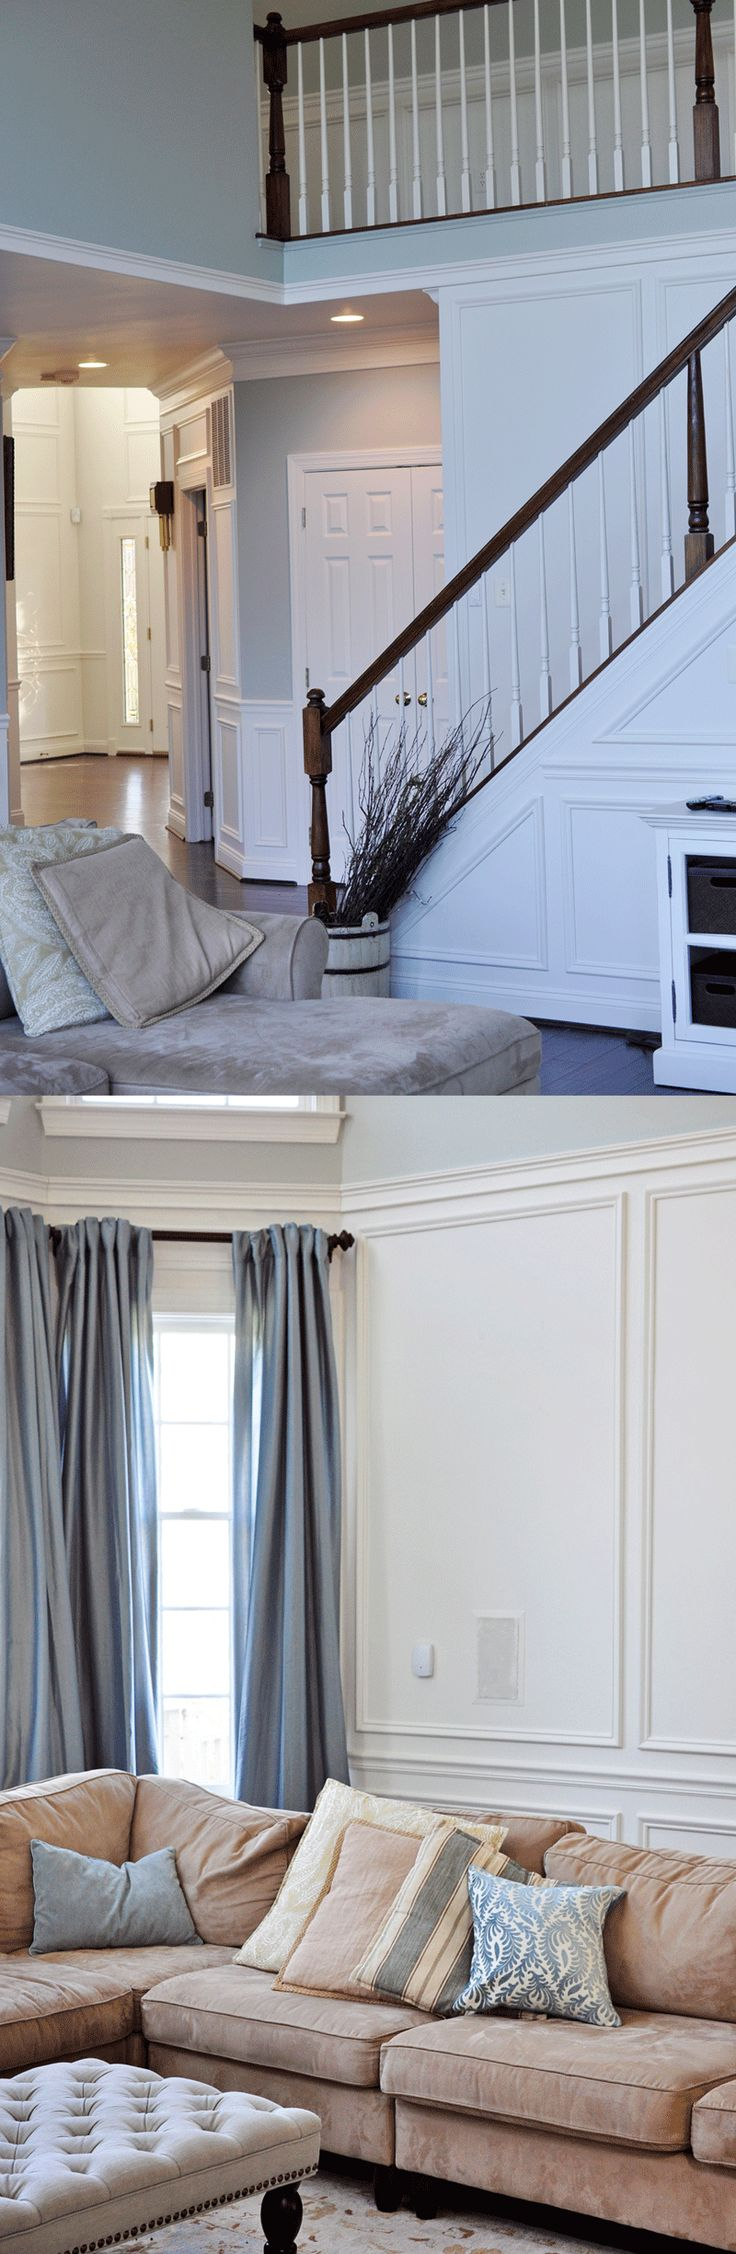 Kitchen Wainscoting 17 Best Ideas About Picture Frame Wainscoting On Pinterest